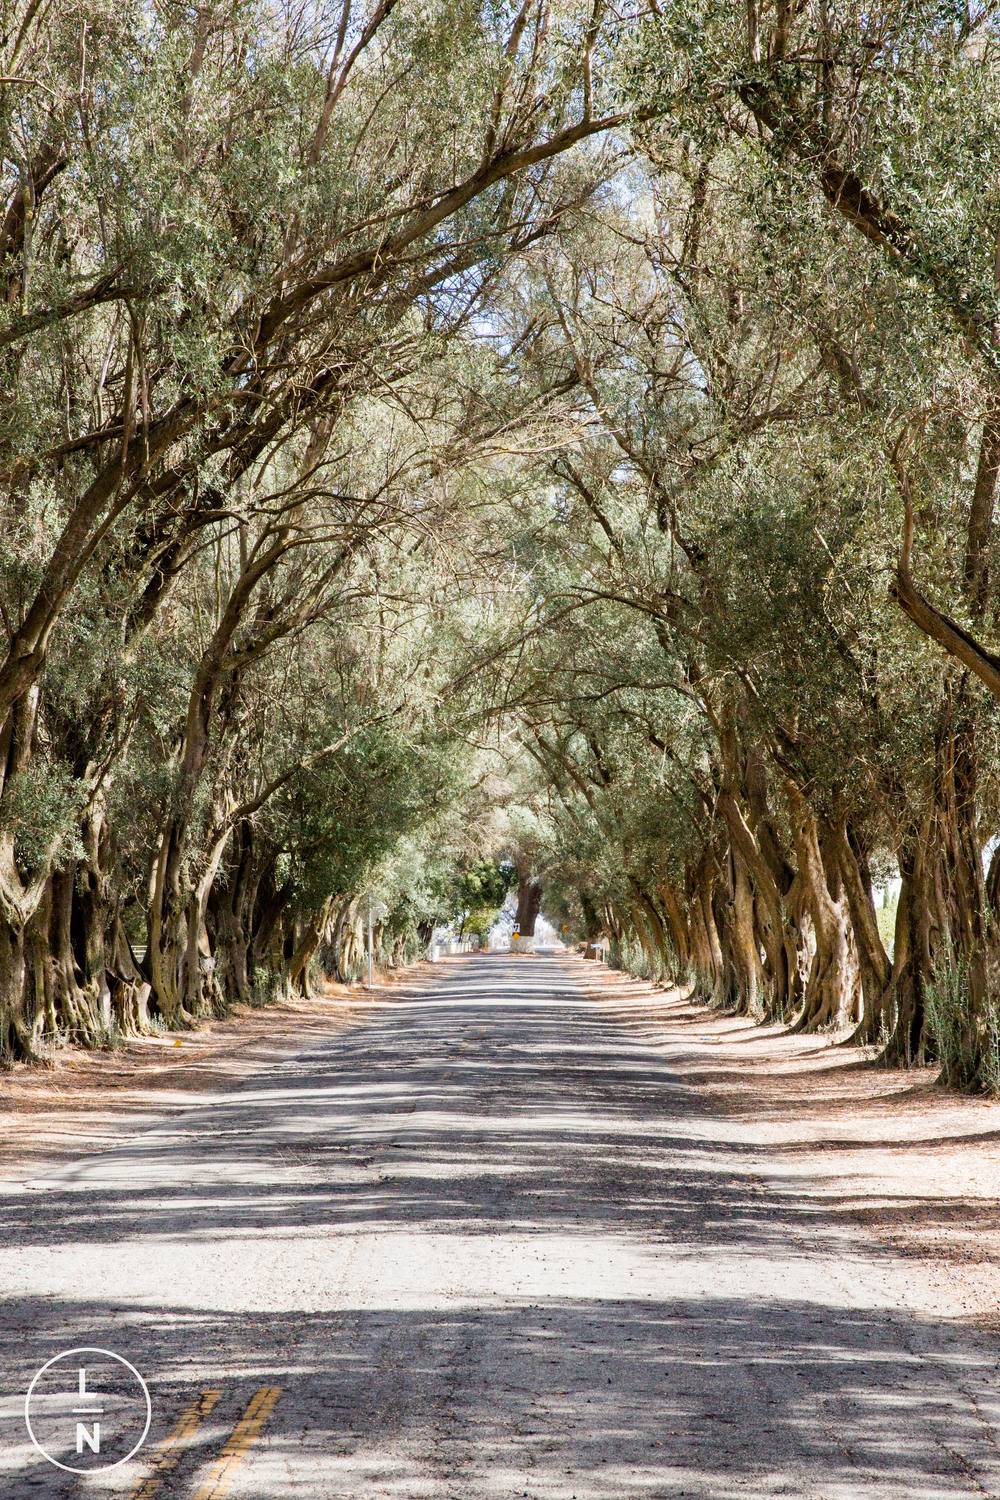 The driveway into Lawley Ranch is lined with olive trees which make for a beautiful back drop.